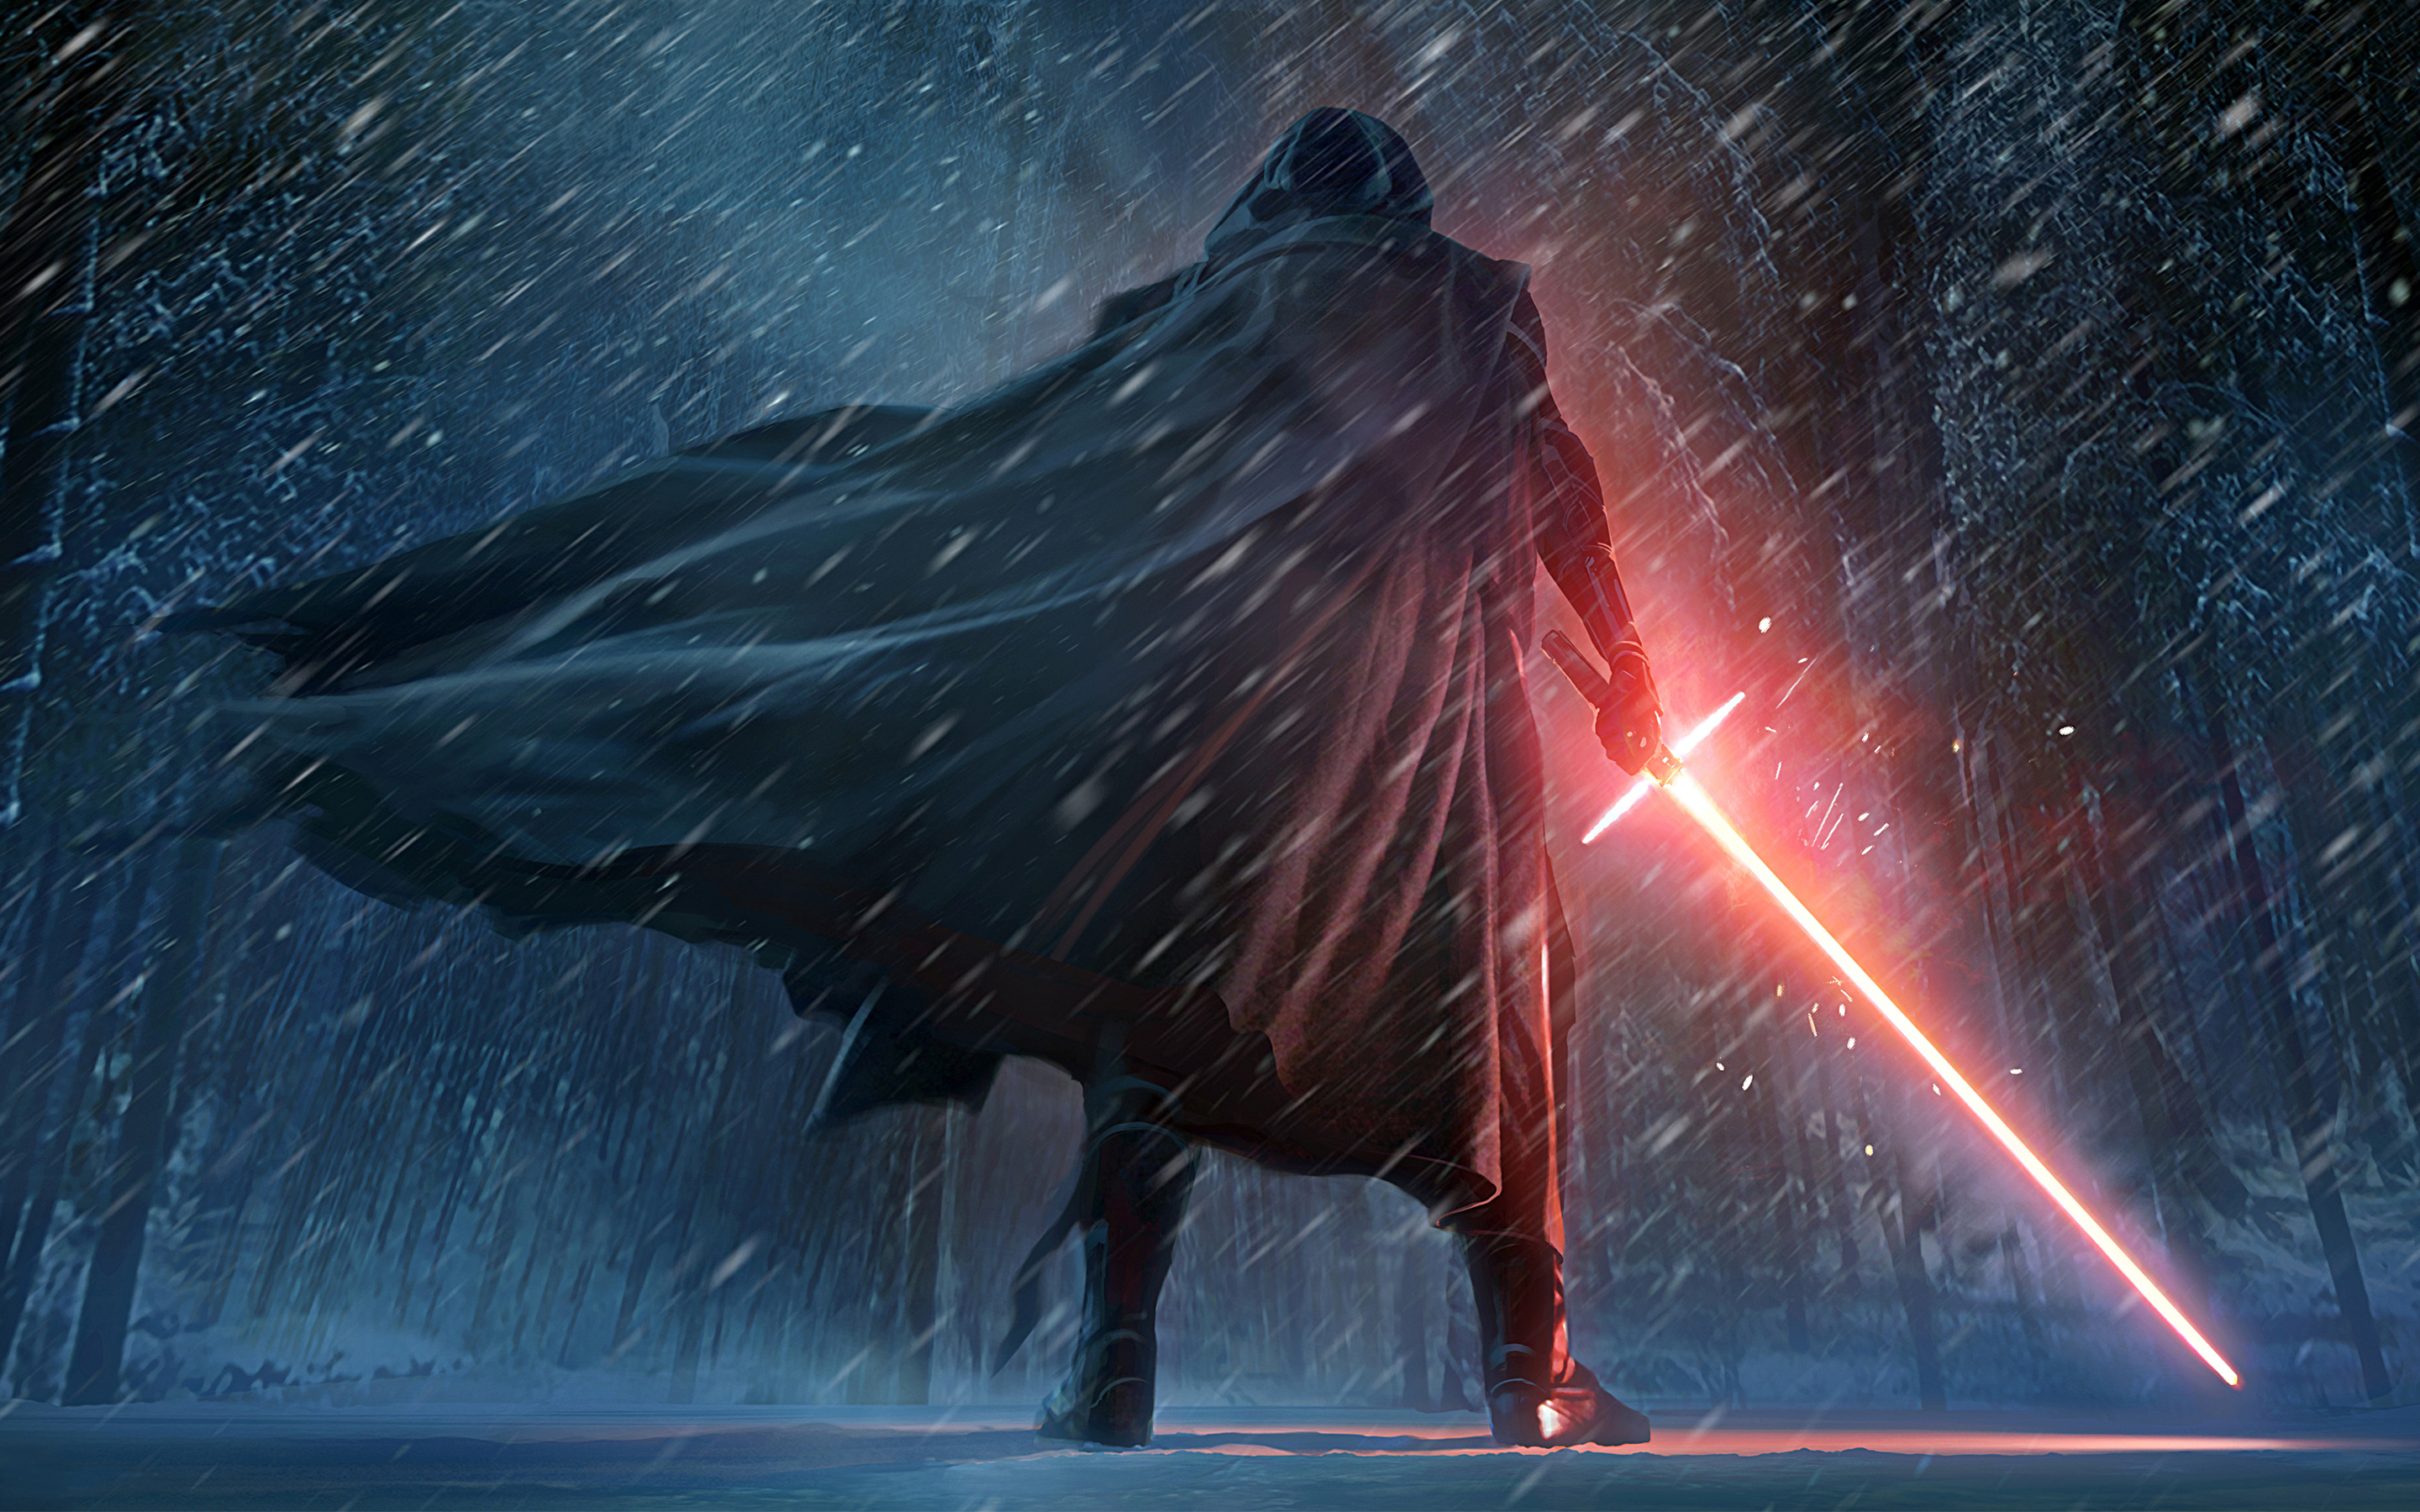 1366x768 Kylo Ren Star Wars 1366x768 Resolution Hd 4k Wallpapers Images Backgrounds Photos And Pictures